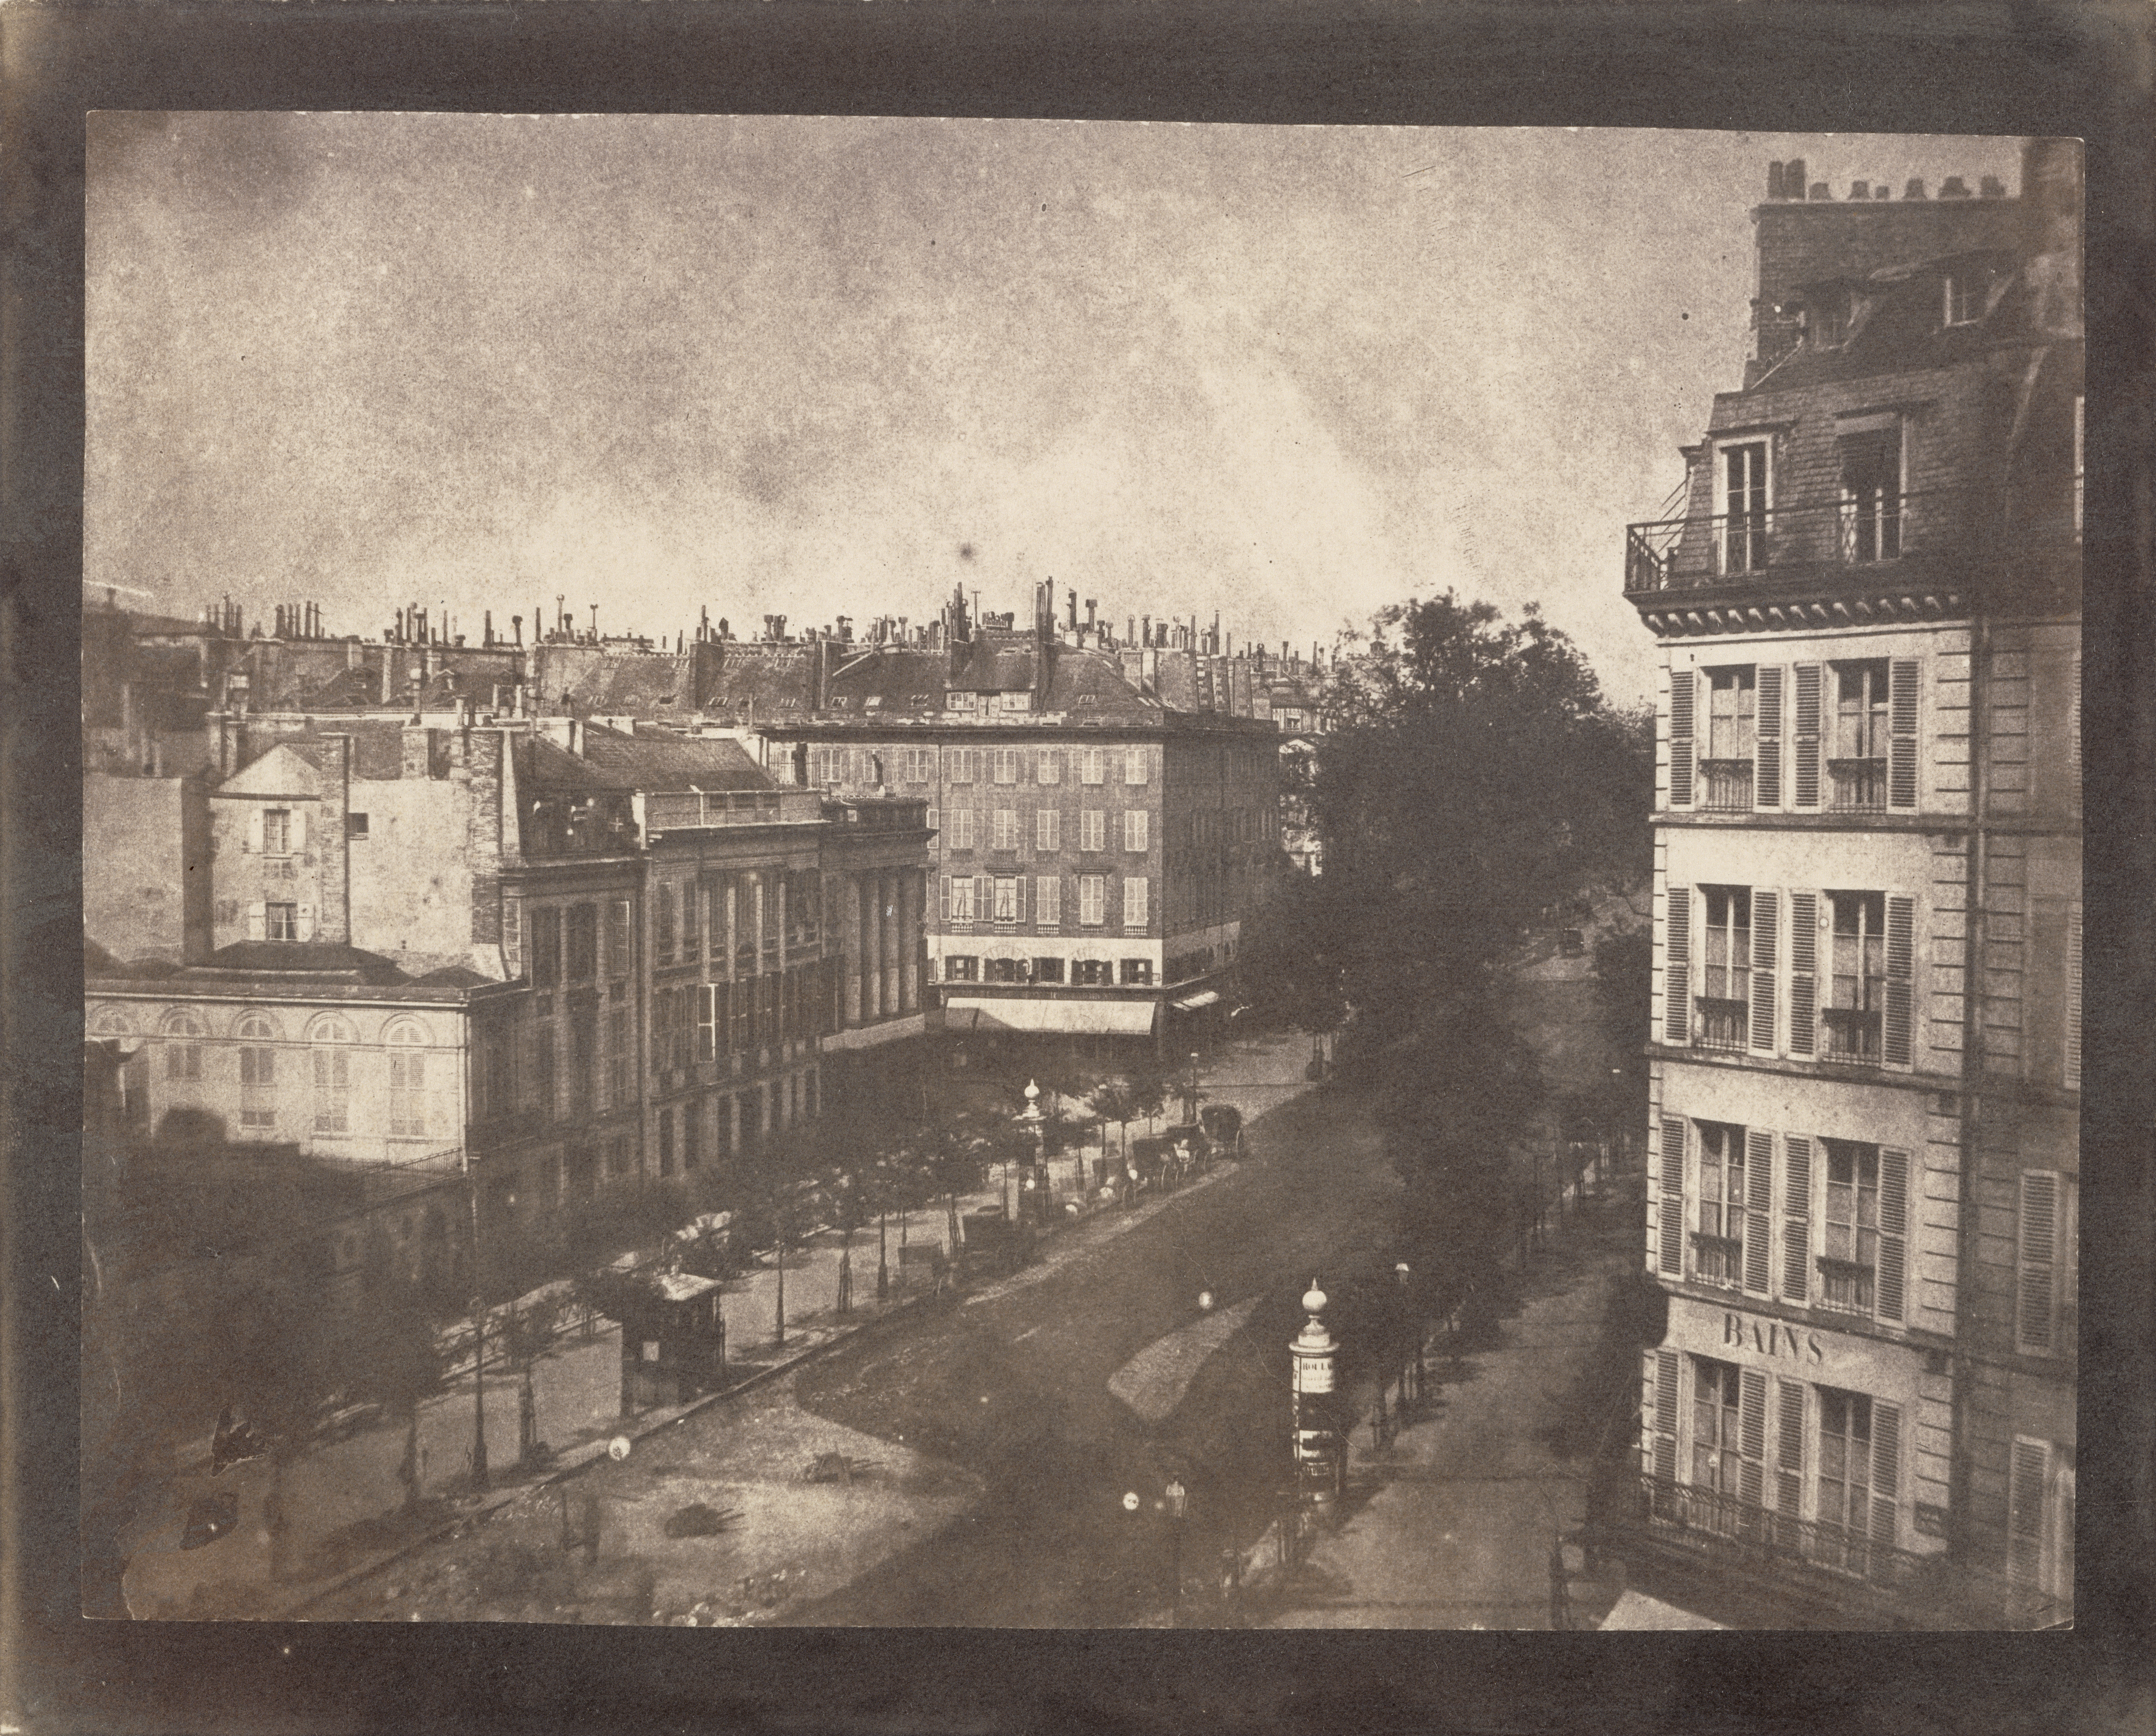 William Henry Fox Talbot, View of the Boulevards of Paris, 1843